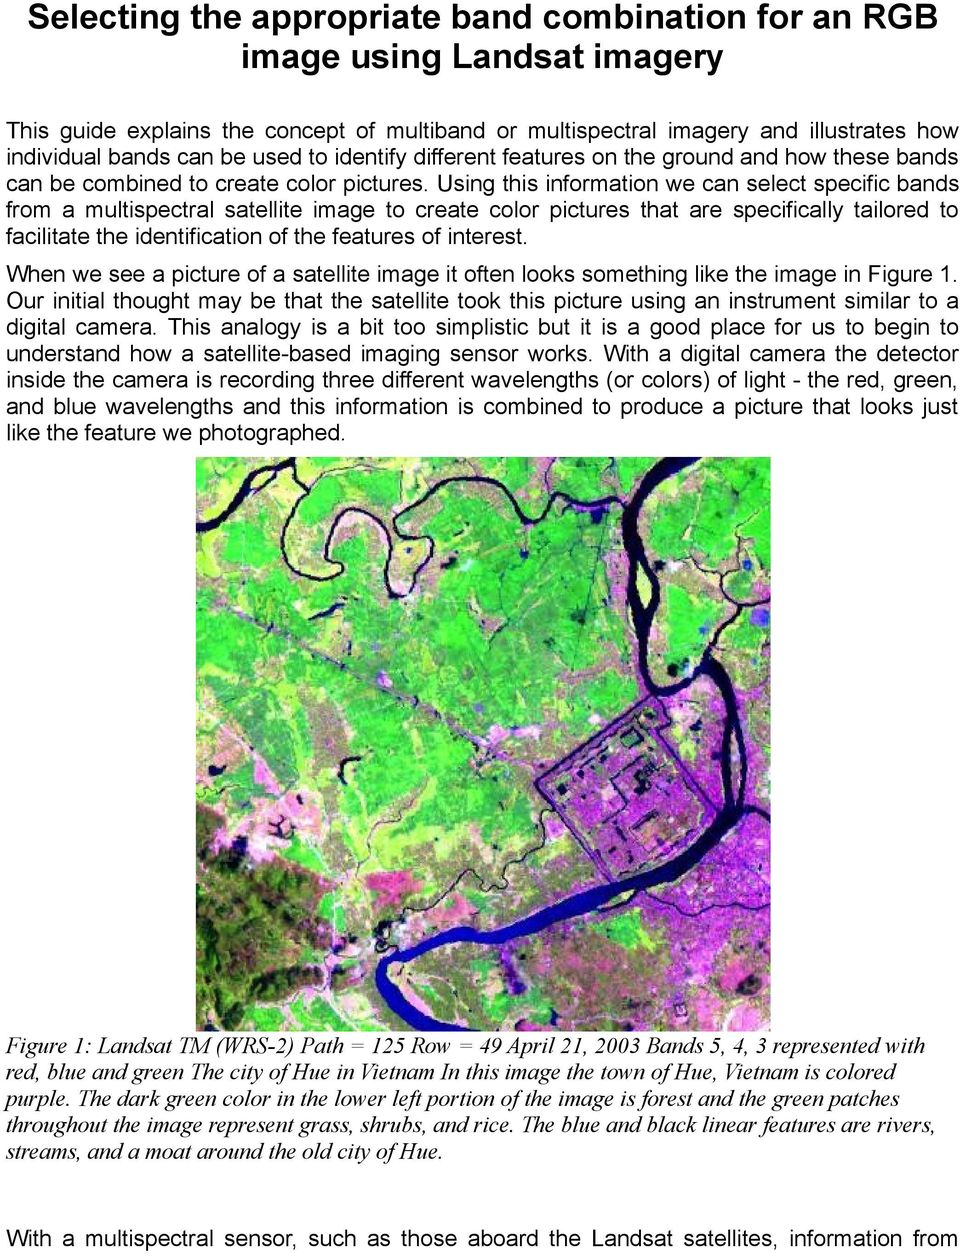 Using this information we can select specific bands from a multispectral satellite image to create color pictures that are specifically tailored to facilitate the identification of the features of